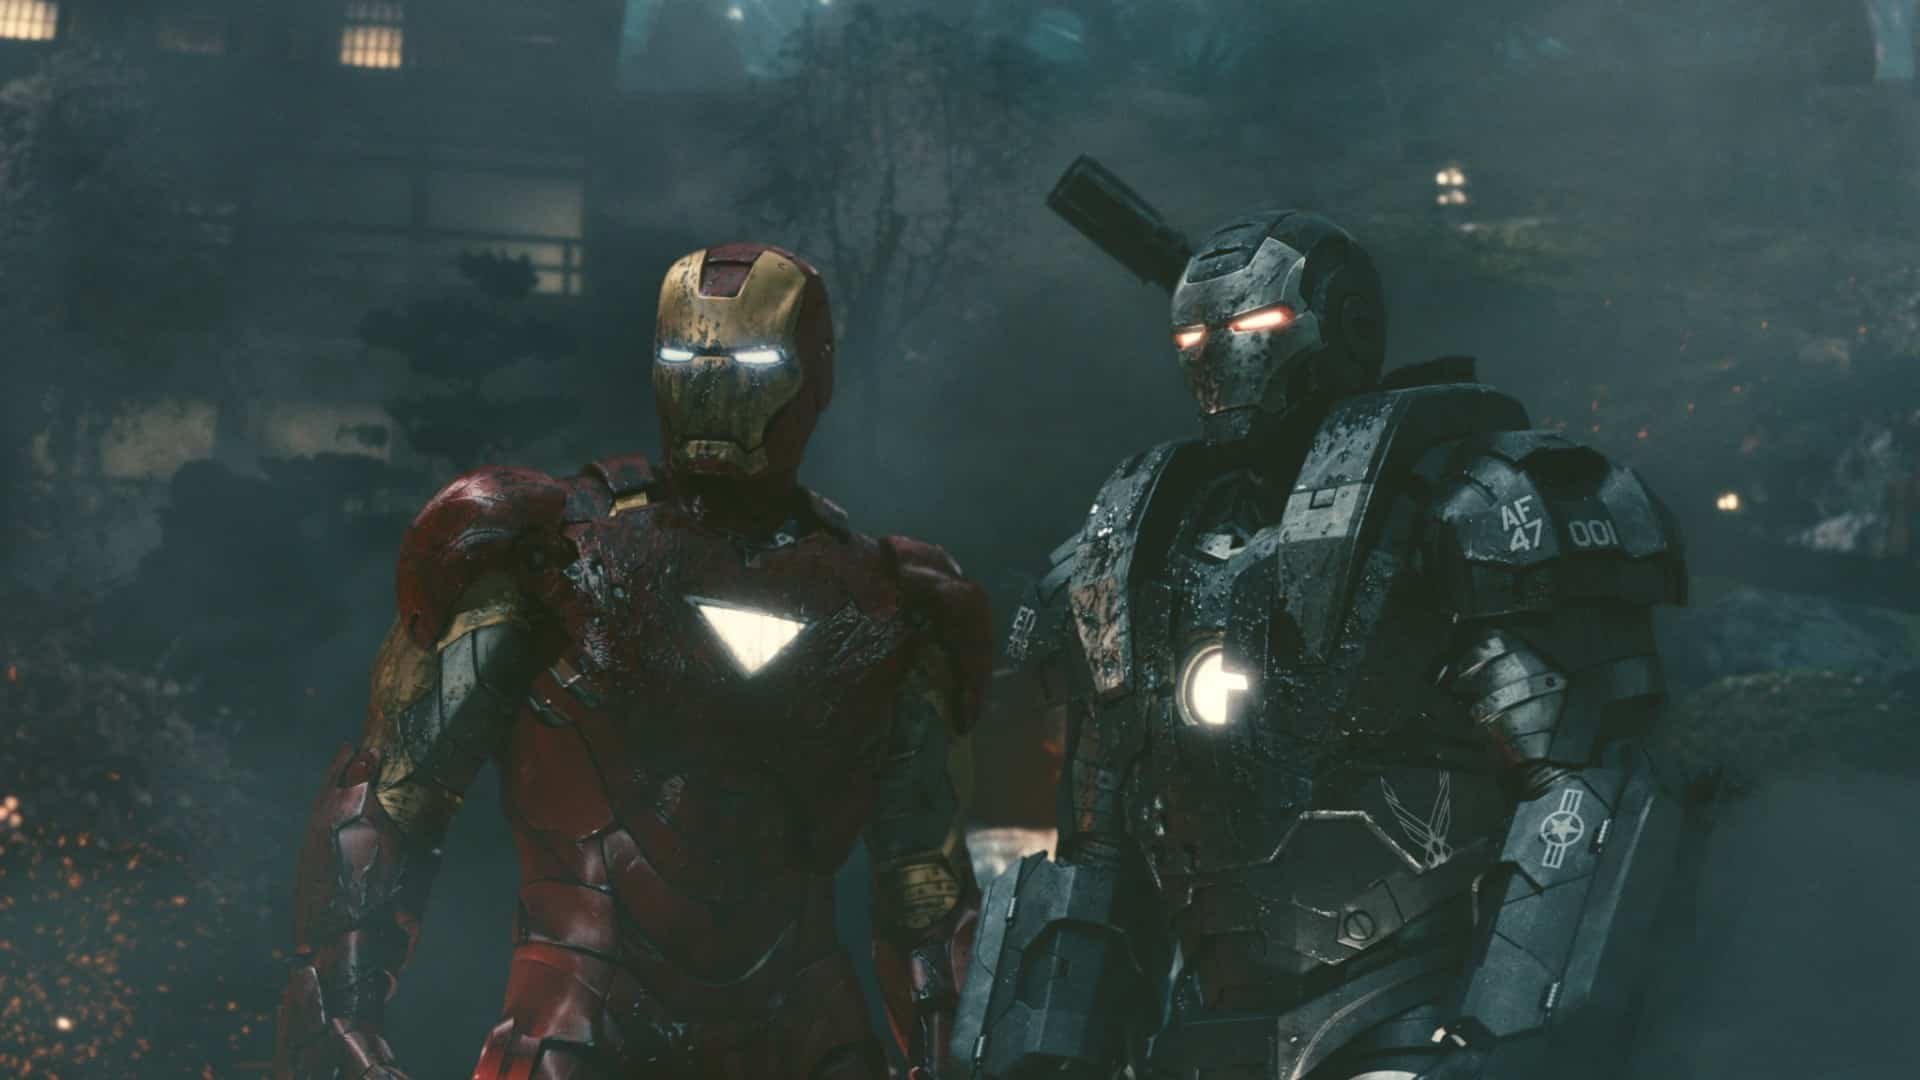 Marvel Cinematic Universe MCU no flawed characters story arcs like alcoholism, Demon in a Bottle, all perfect paragon heroes Iron Man 2